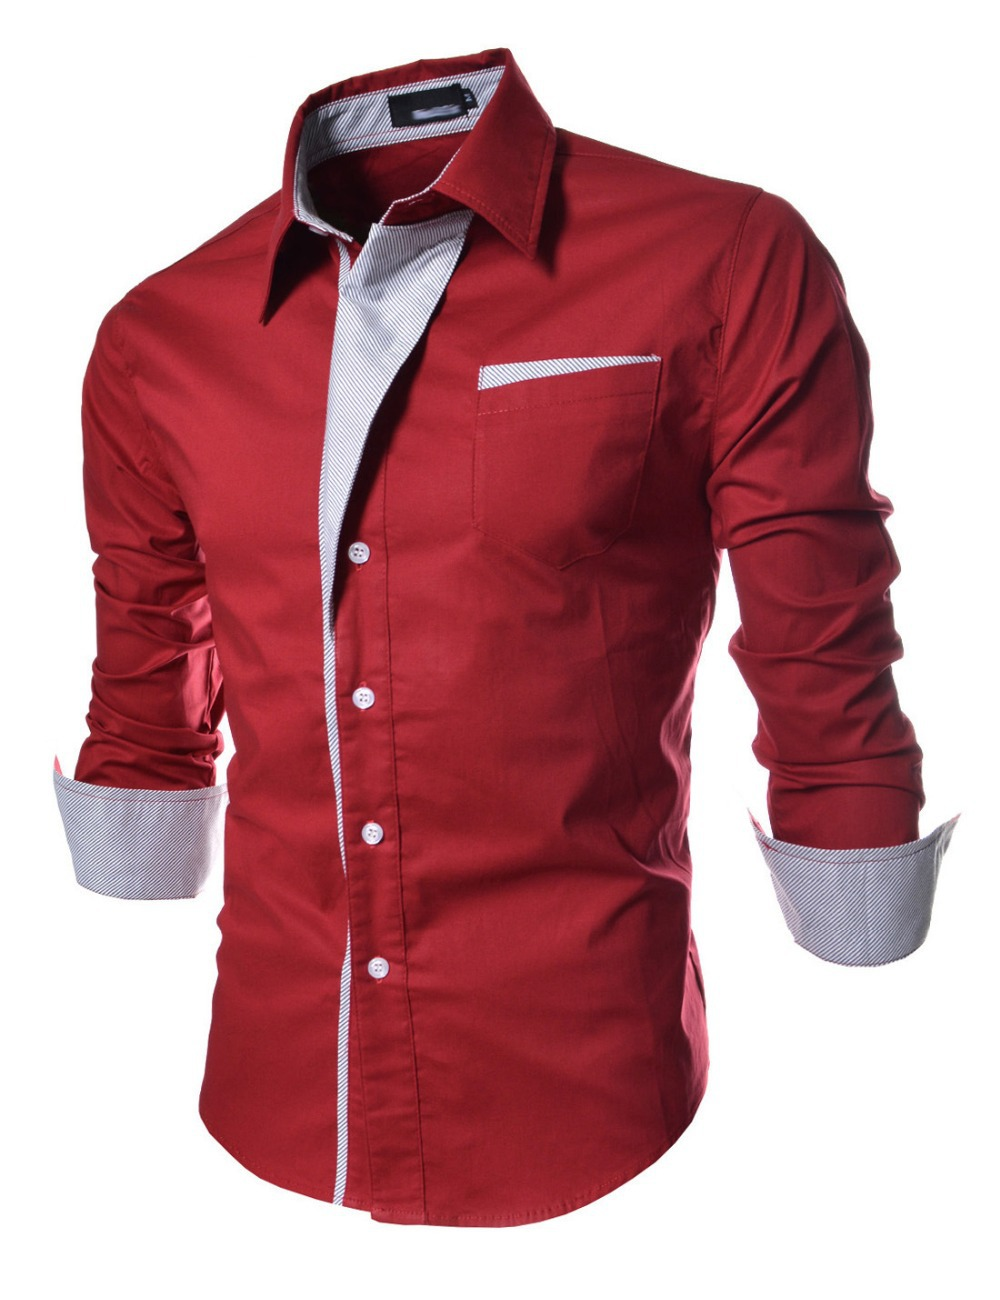 2015 new fashion Casual Men Shirts Long Sleeve Autumn great Brand Cotton Slim High Quality shirt